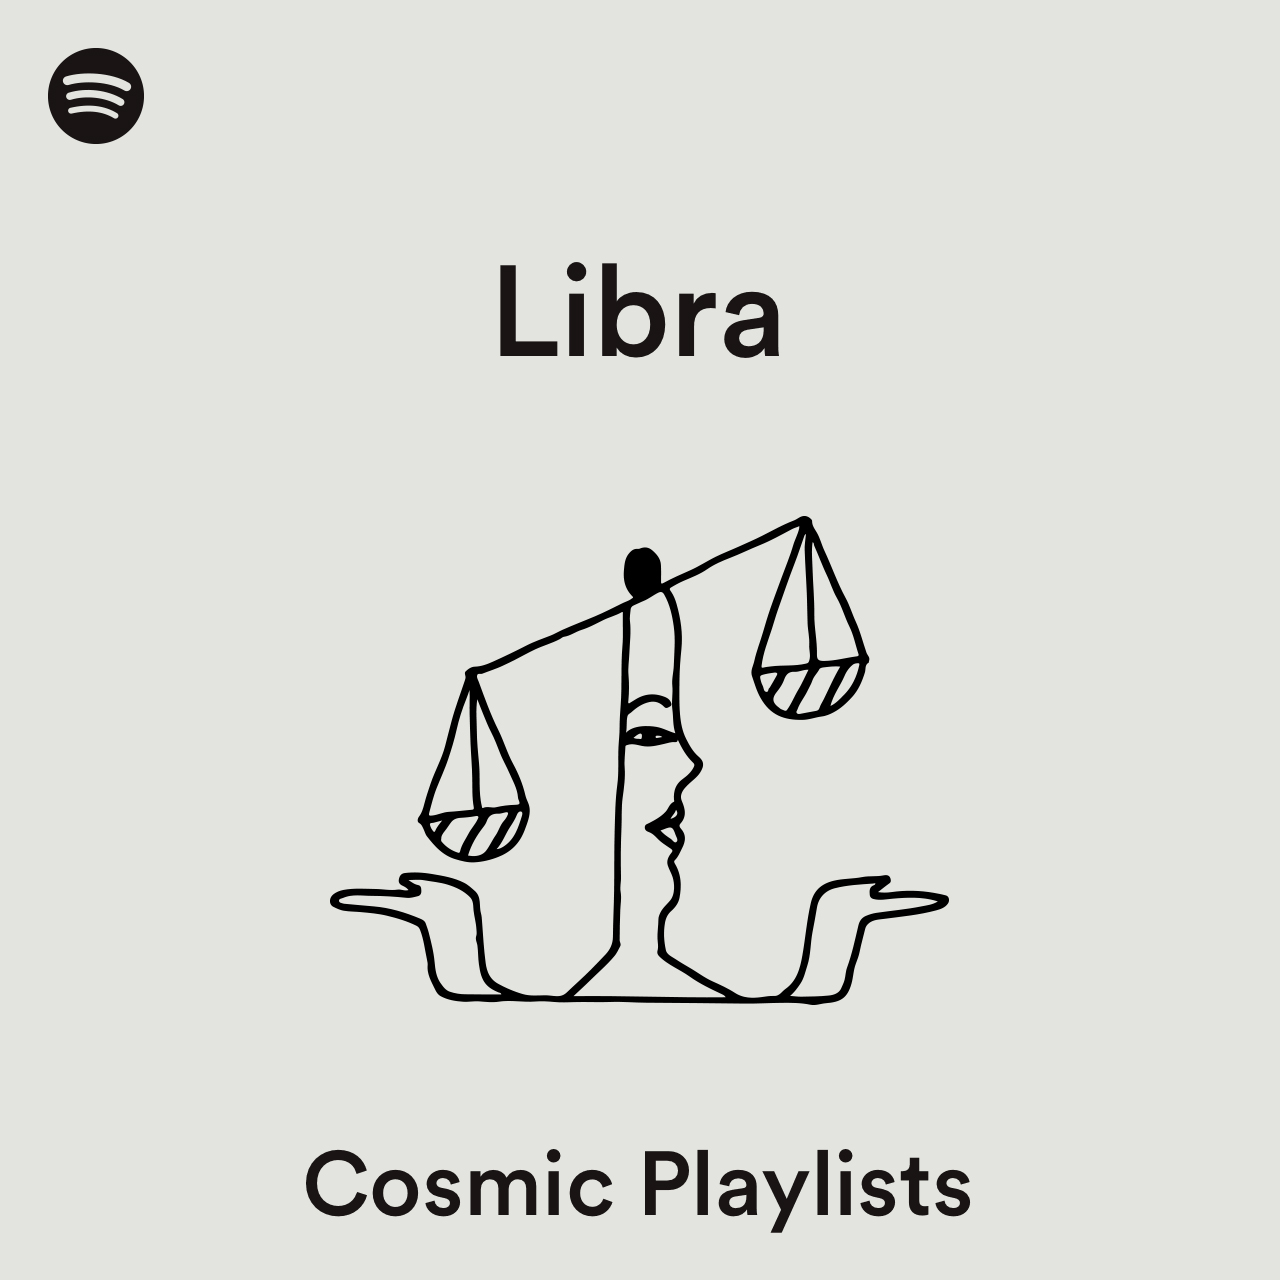 190110-Astrology-PlaylistCovers-03_0006_Libra